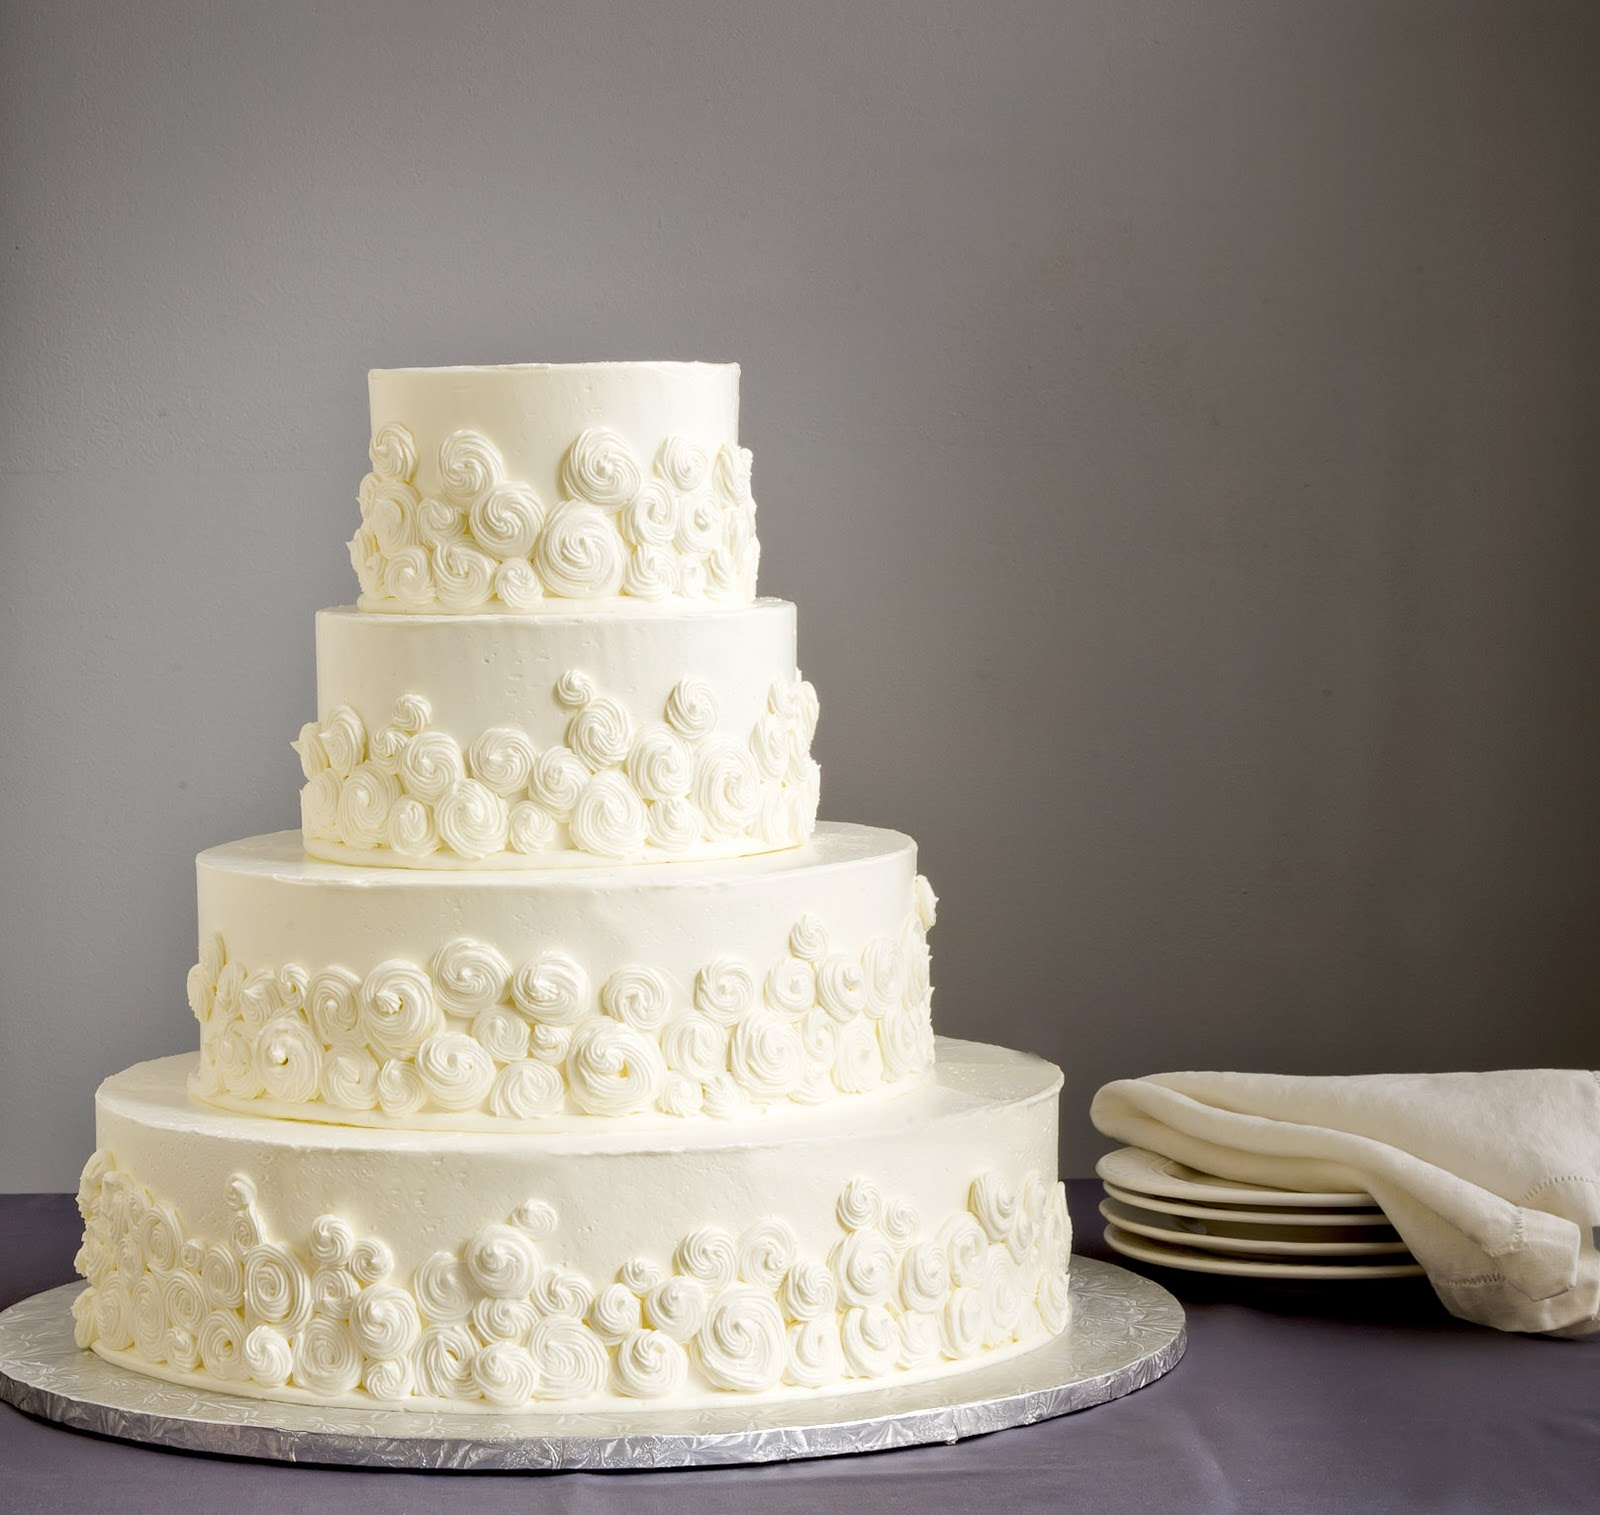 Wedding Cake Design Tips : THREE NEW Wedding Cake Ideas Culinary Crossroads ...